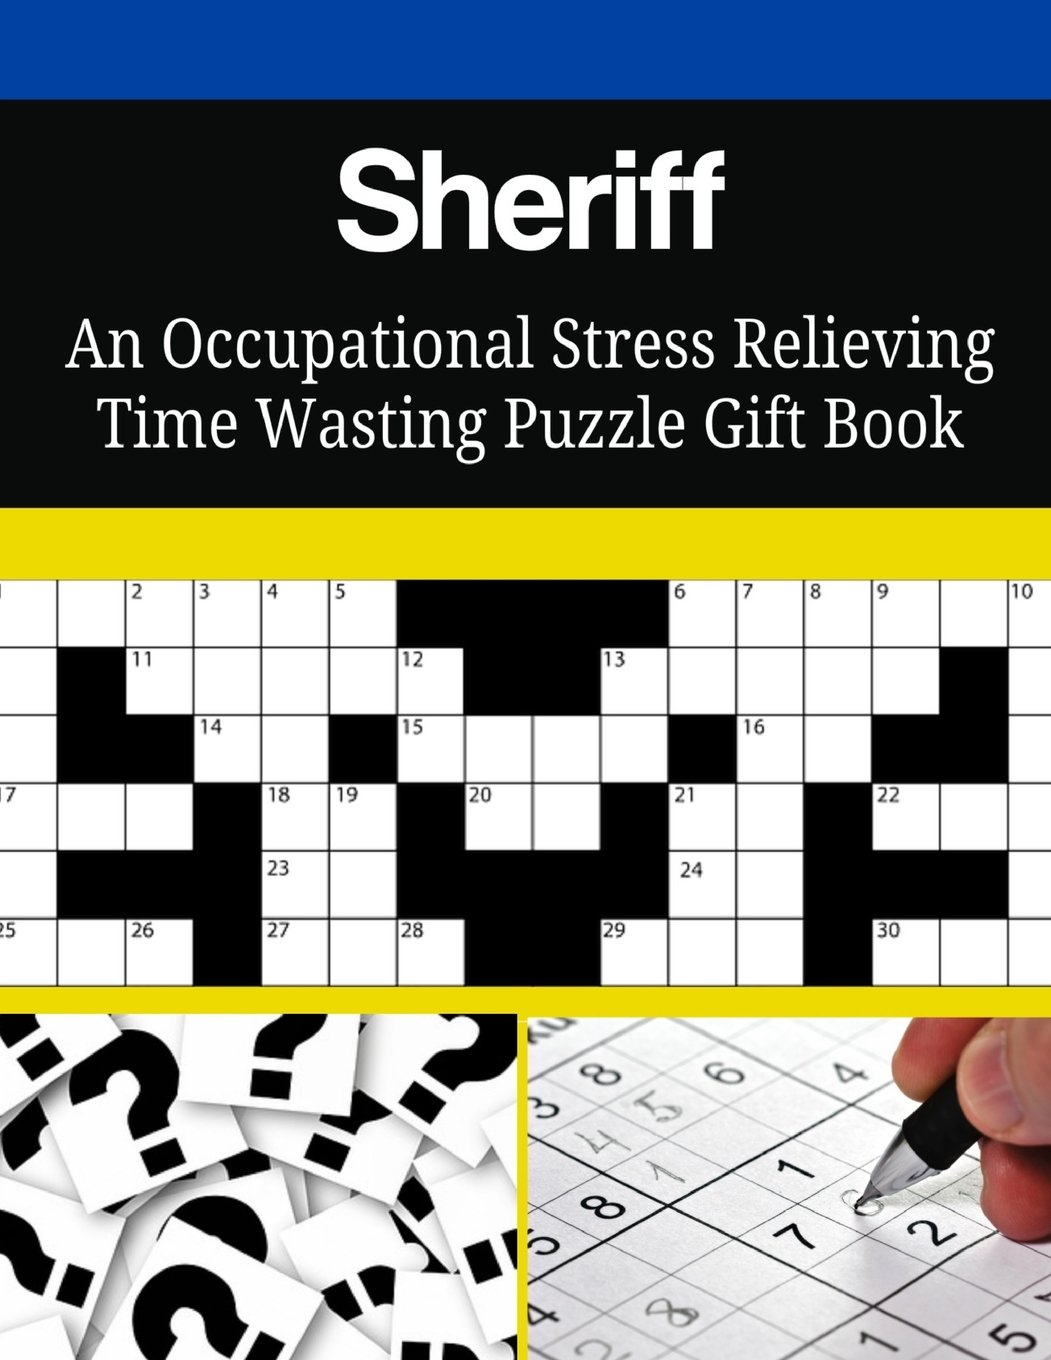 Sheriff An Occupational Stress Relieving Time Wasting Puzzle Gift Book PDF